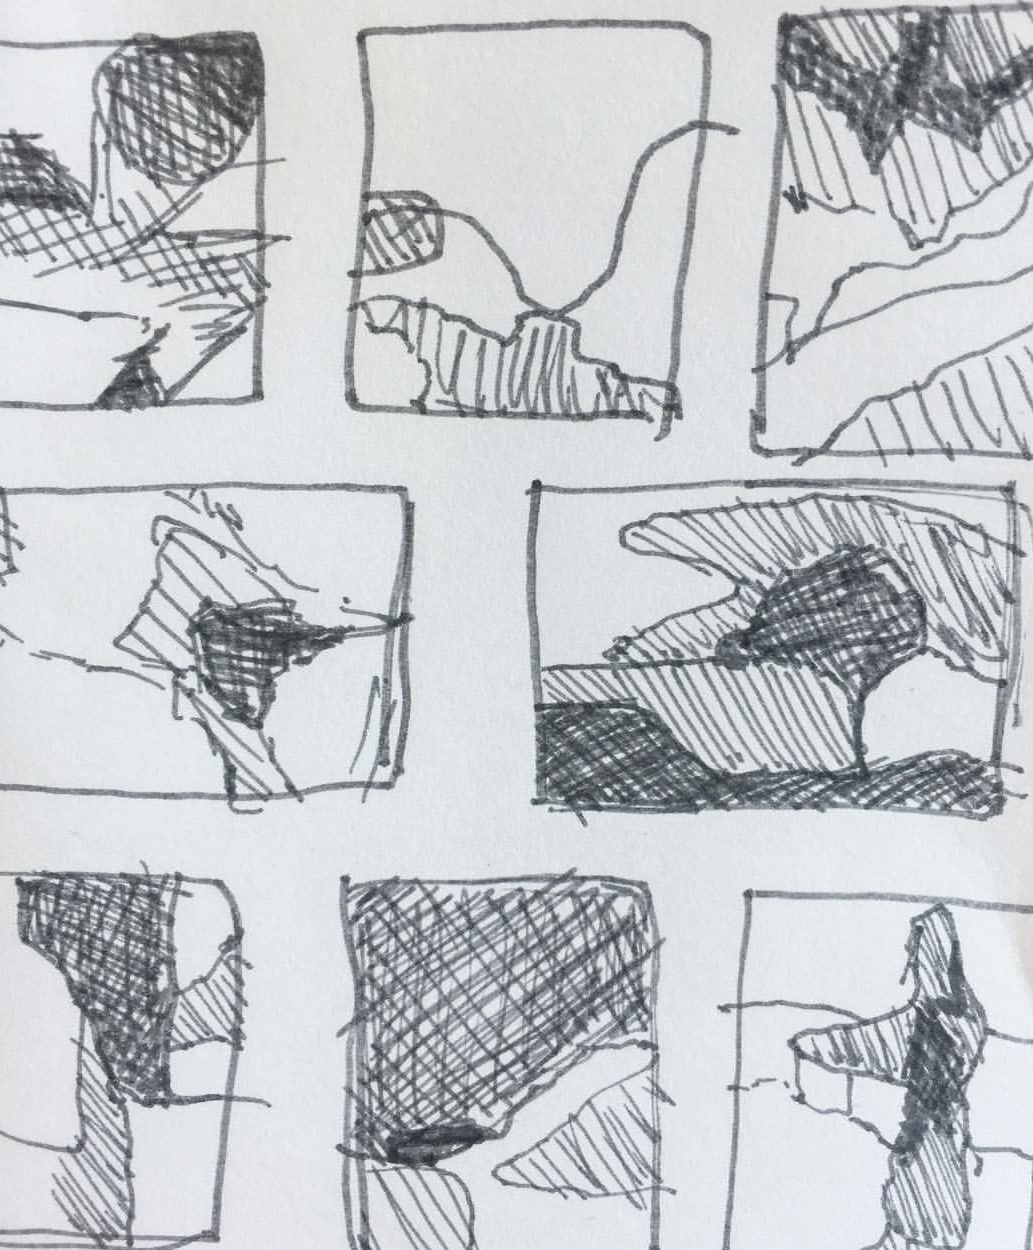 Compositional sketches from Karen's Sketchbook